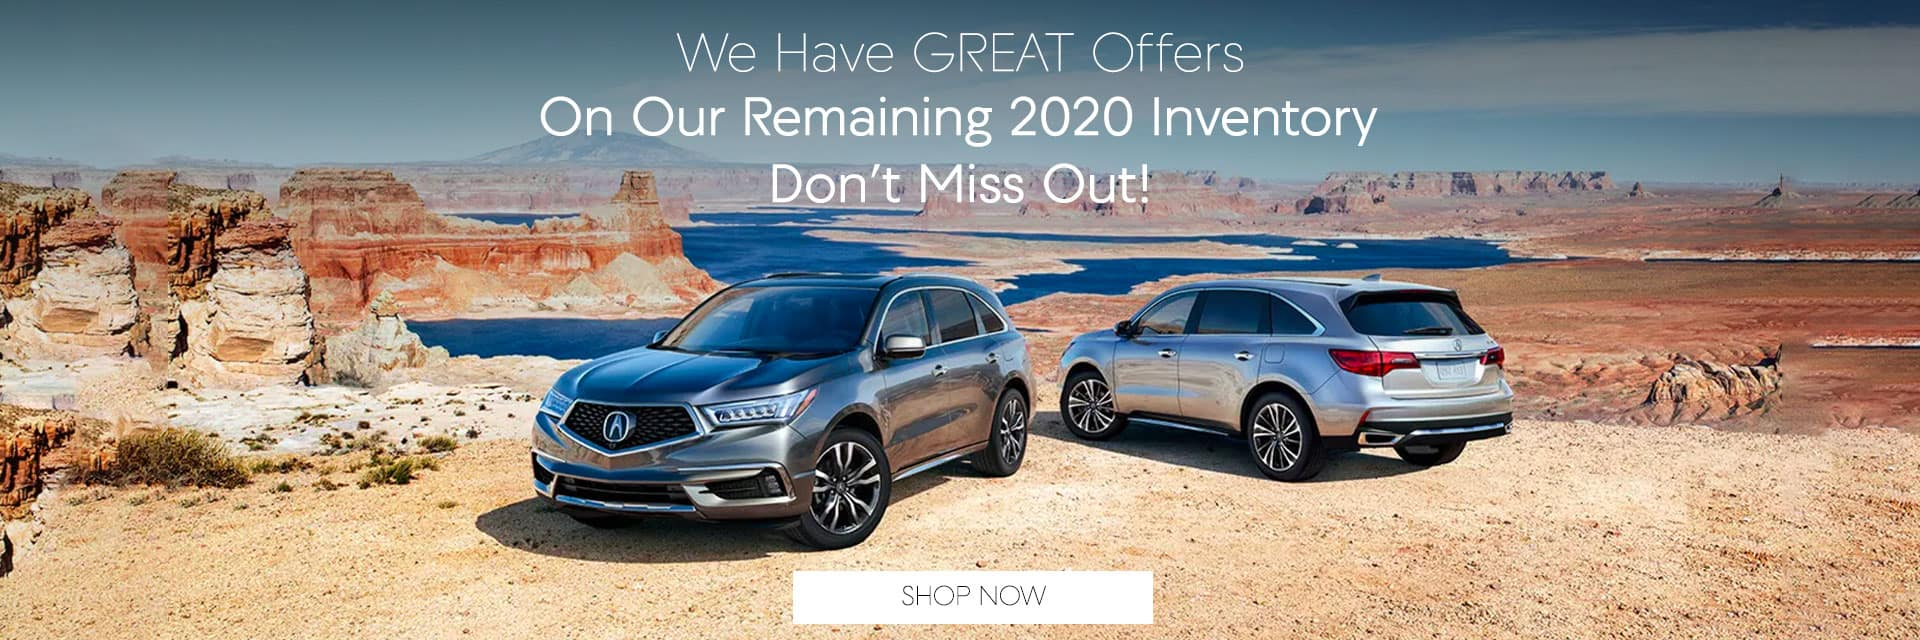 Great offers on 2020 inventory